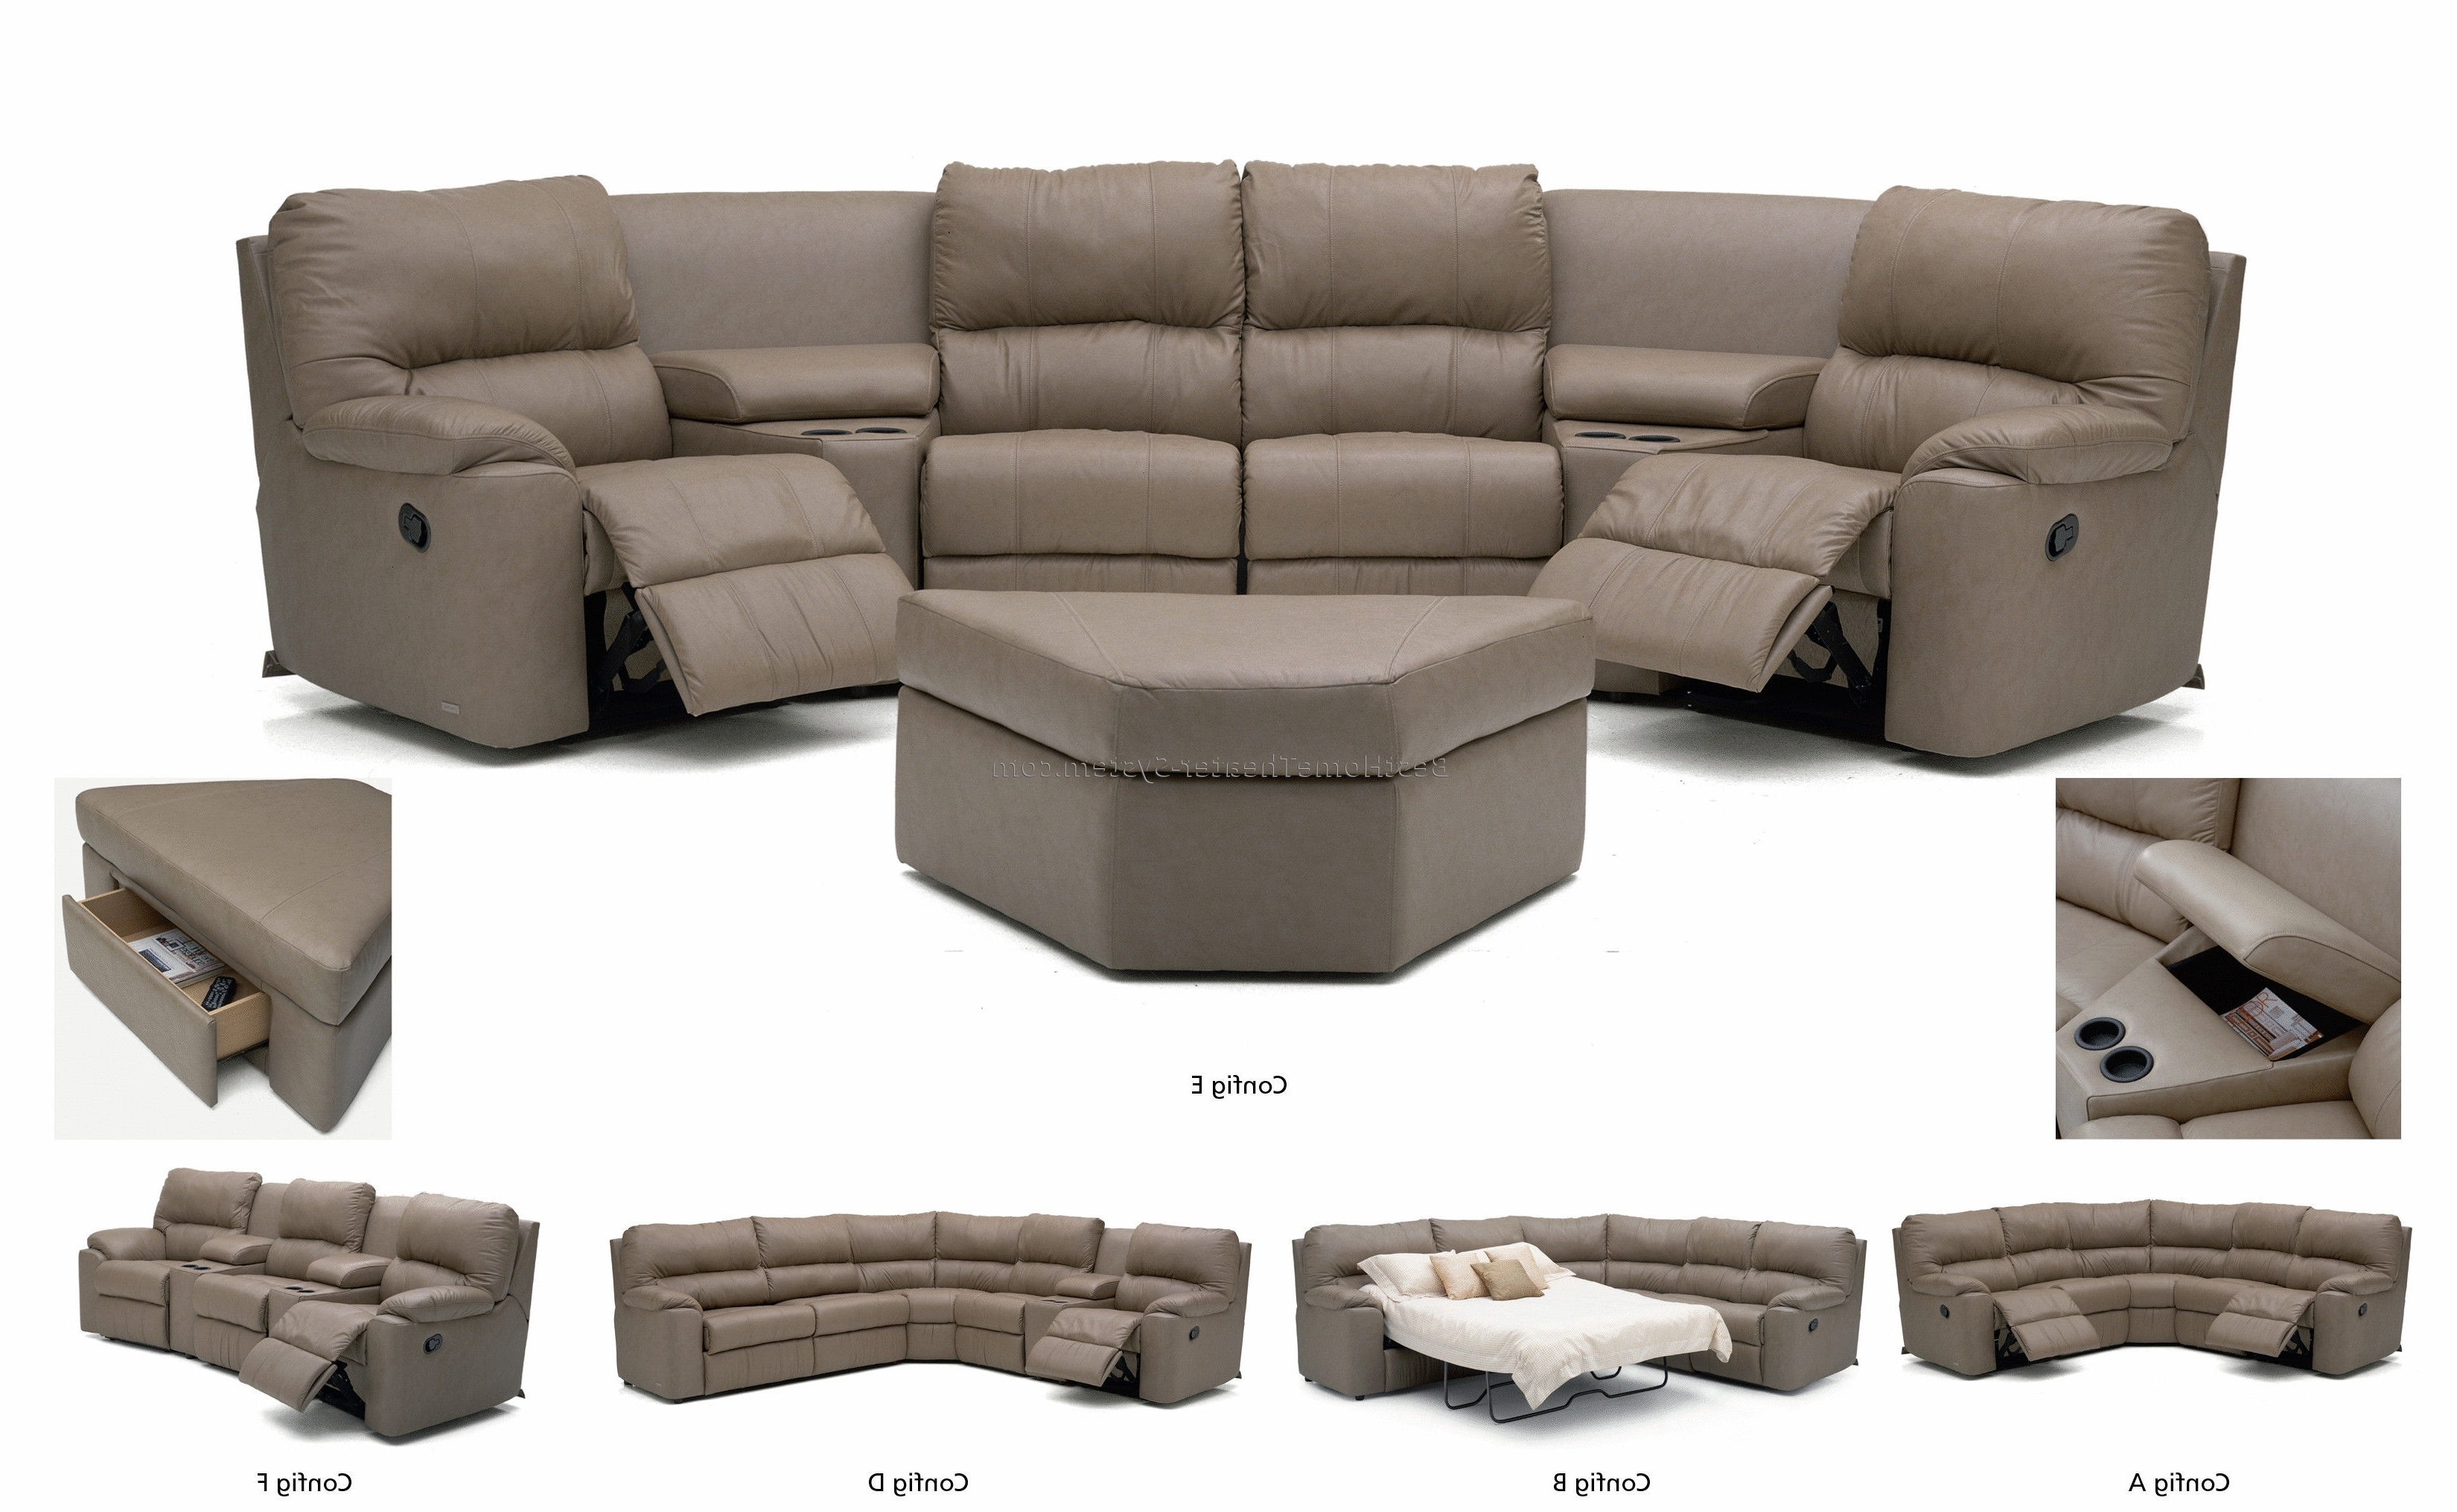 Best Home Theater Systems In Most Current 2 Seat Sectional Sofas (View 7 of 15)